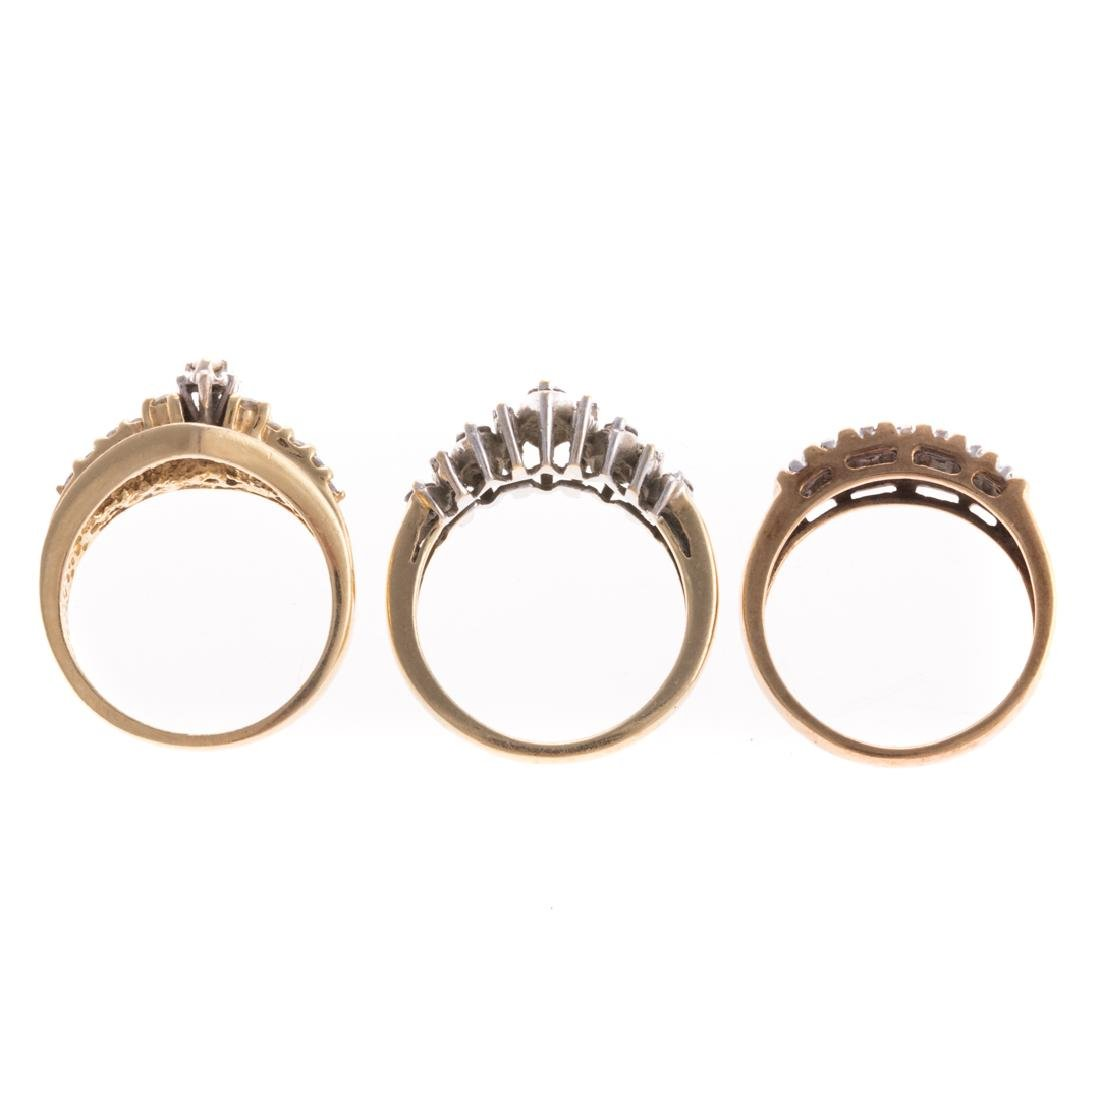 A Trio of Lady's Diamond Bands in Gold - 6